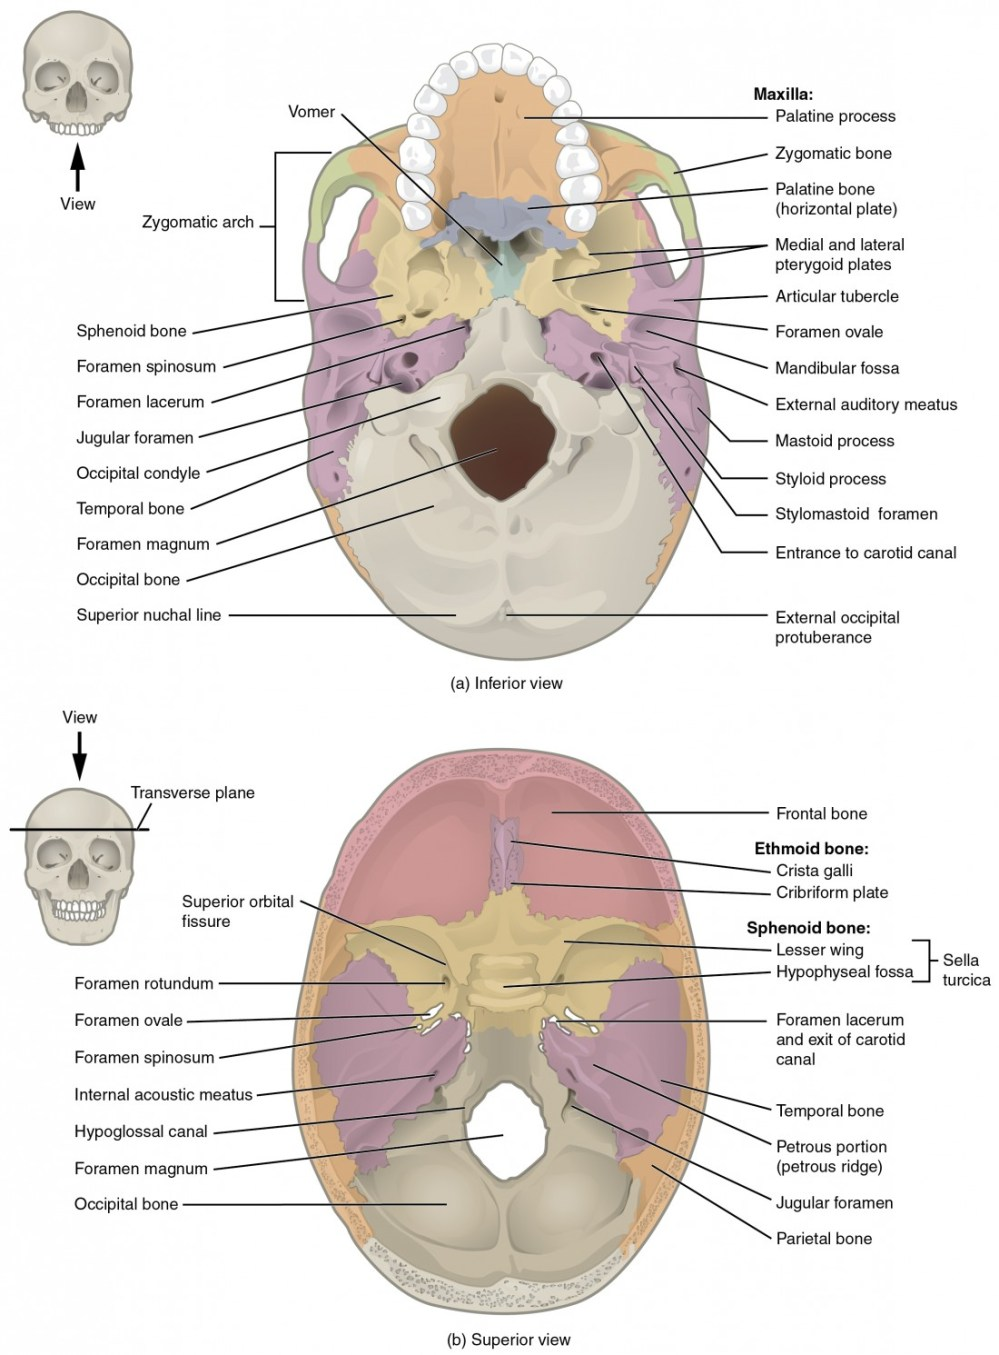 medium resolution of this image shows the superior and inferior view of the skull base in the top